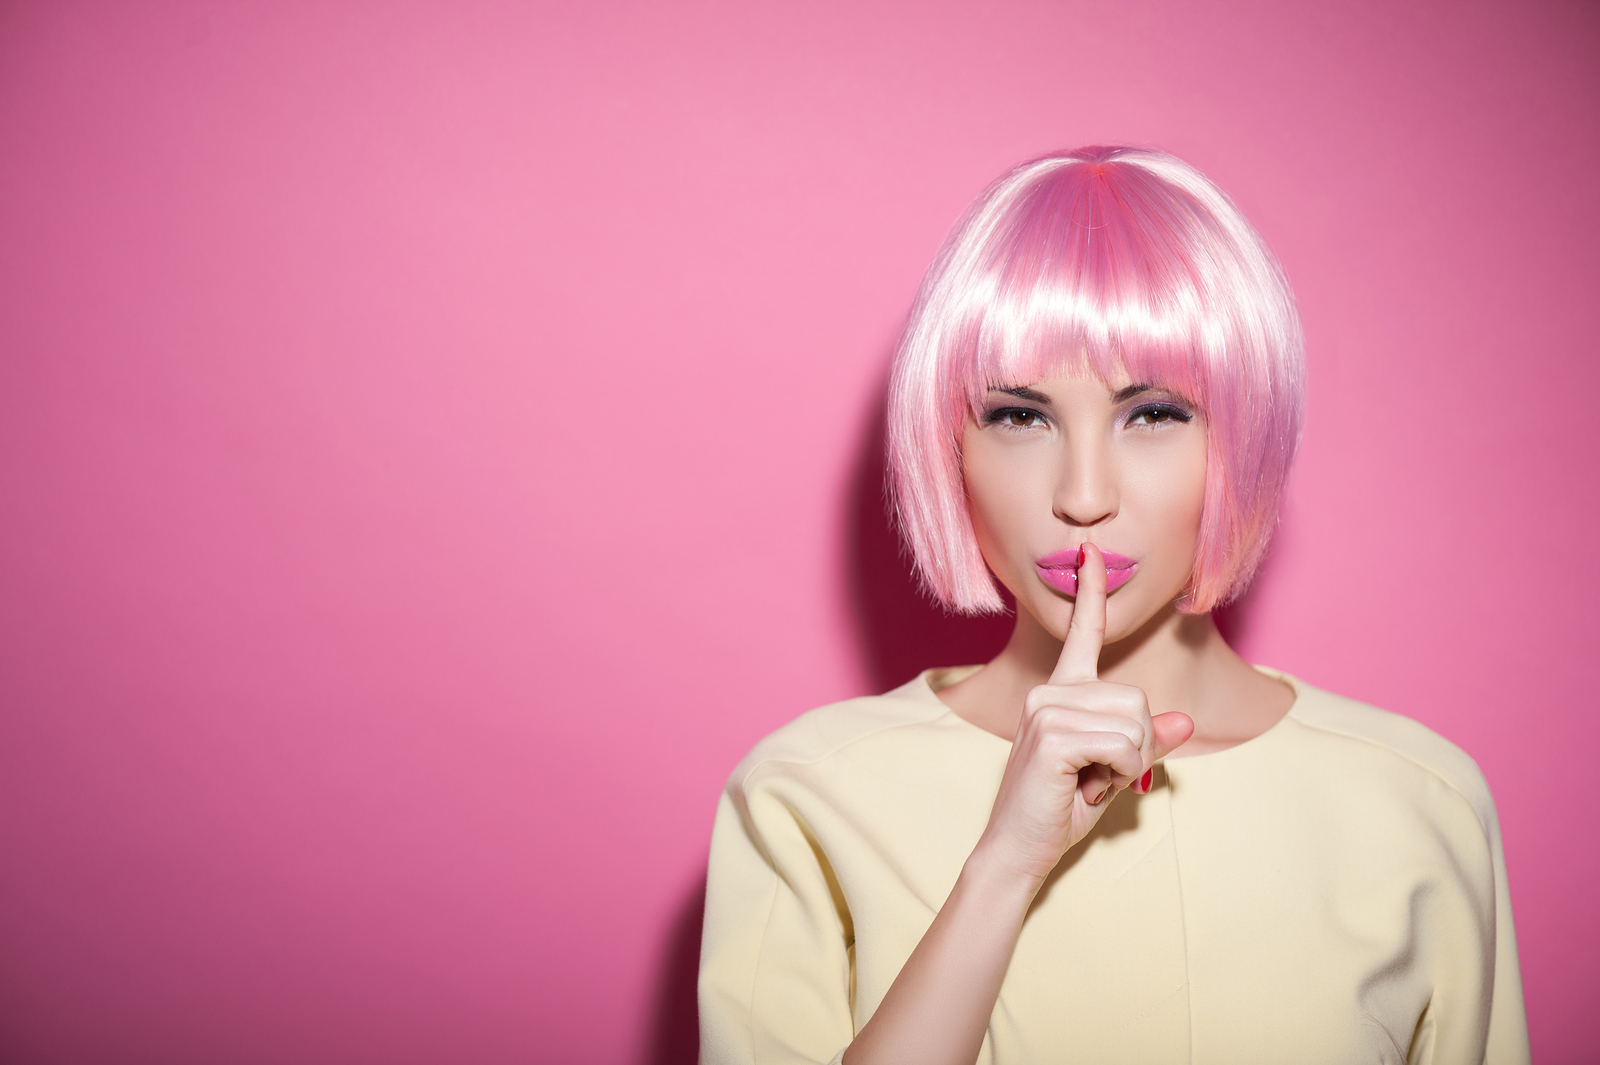 Save my secret. Portrait of attractive woman in a wig raising finger to her pink lips. She is standing and looking at camera mysteriously. Isolated and copy space in left side